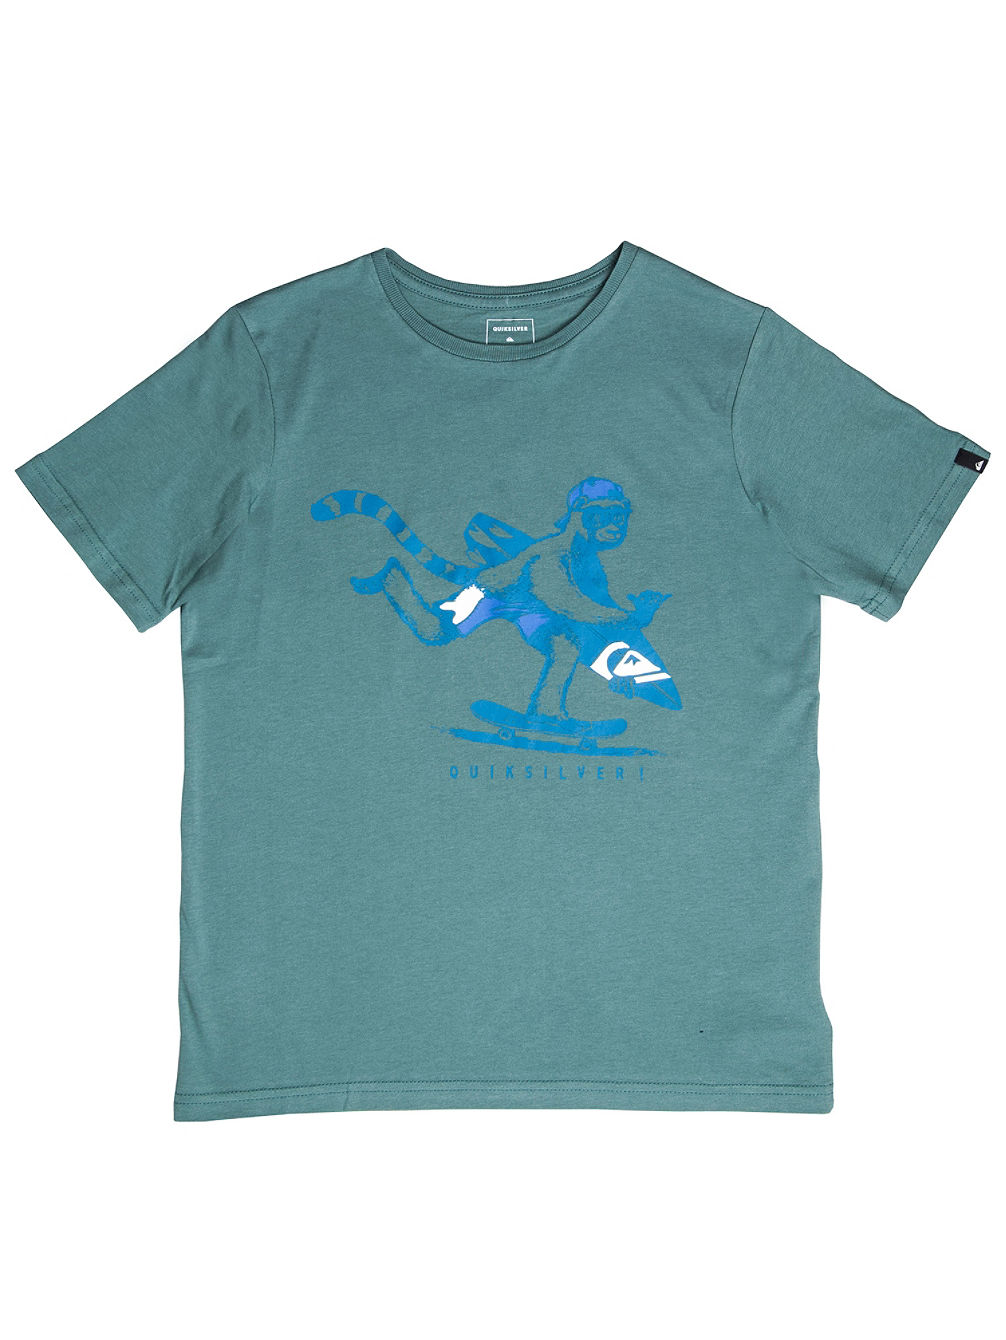 Its Offshore T-Shirt Boys